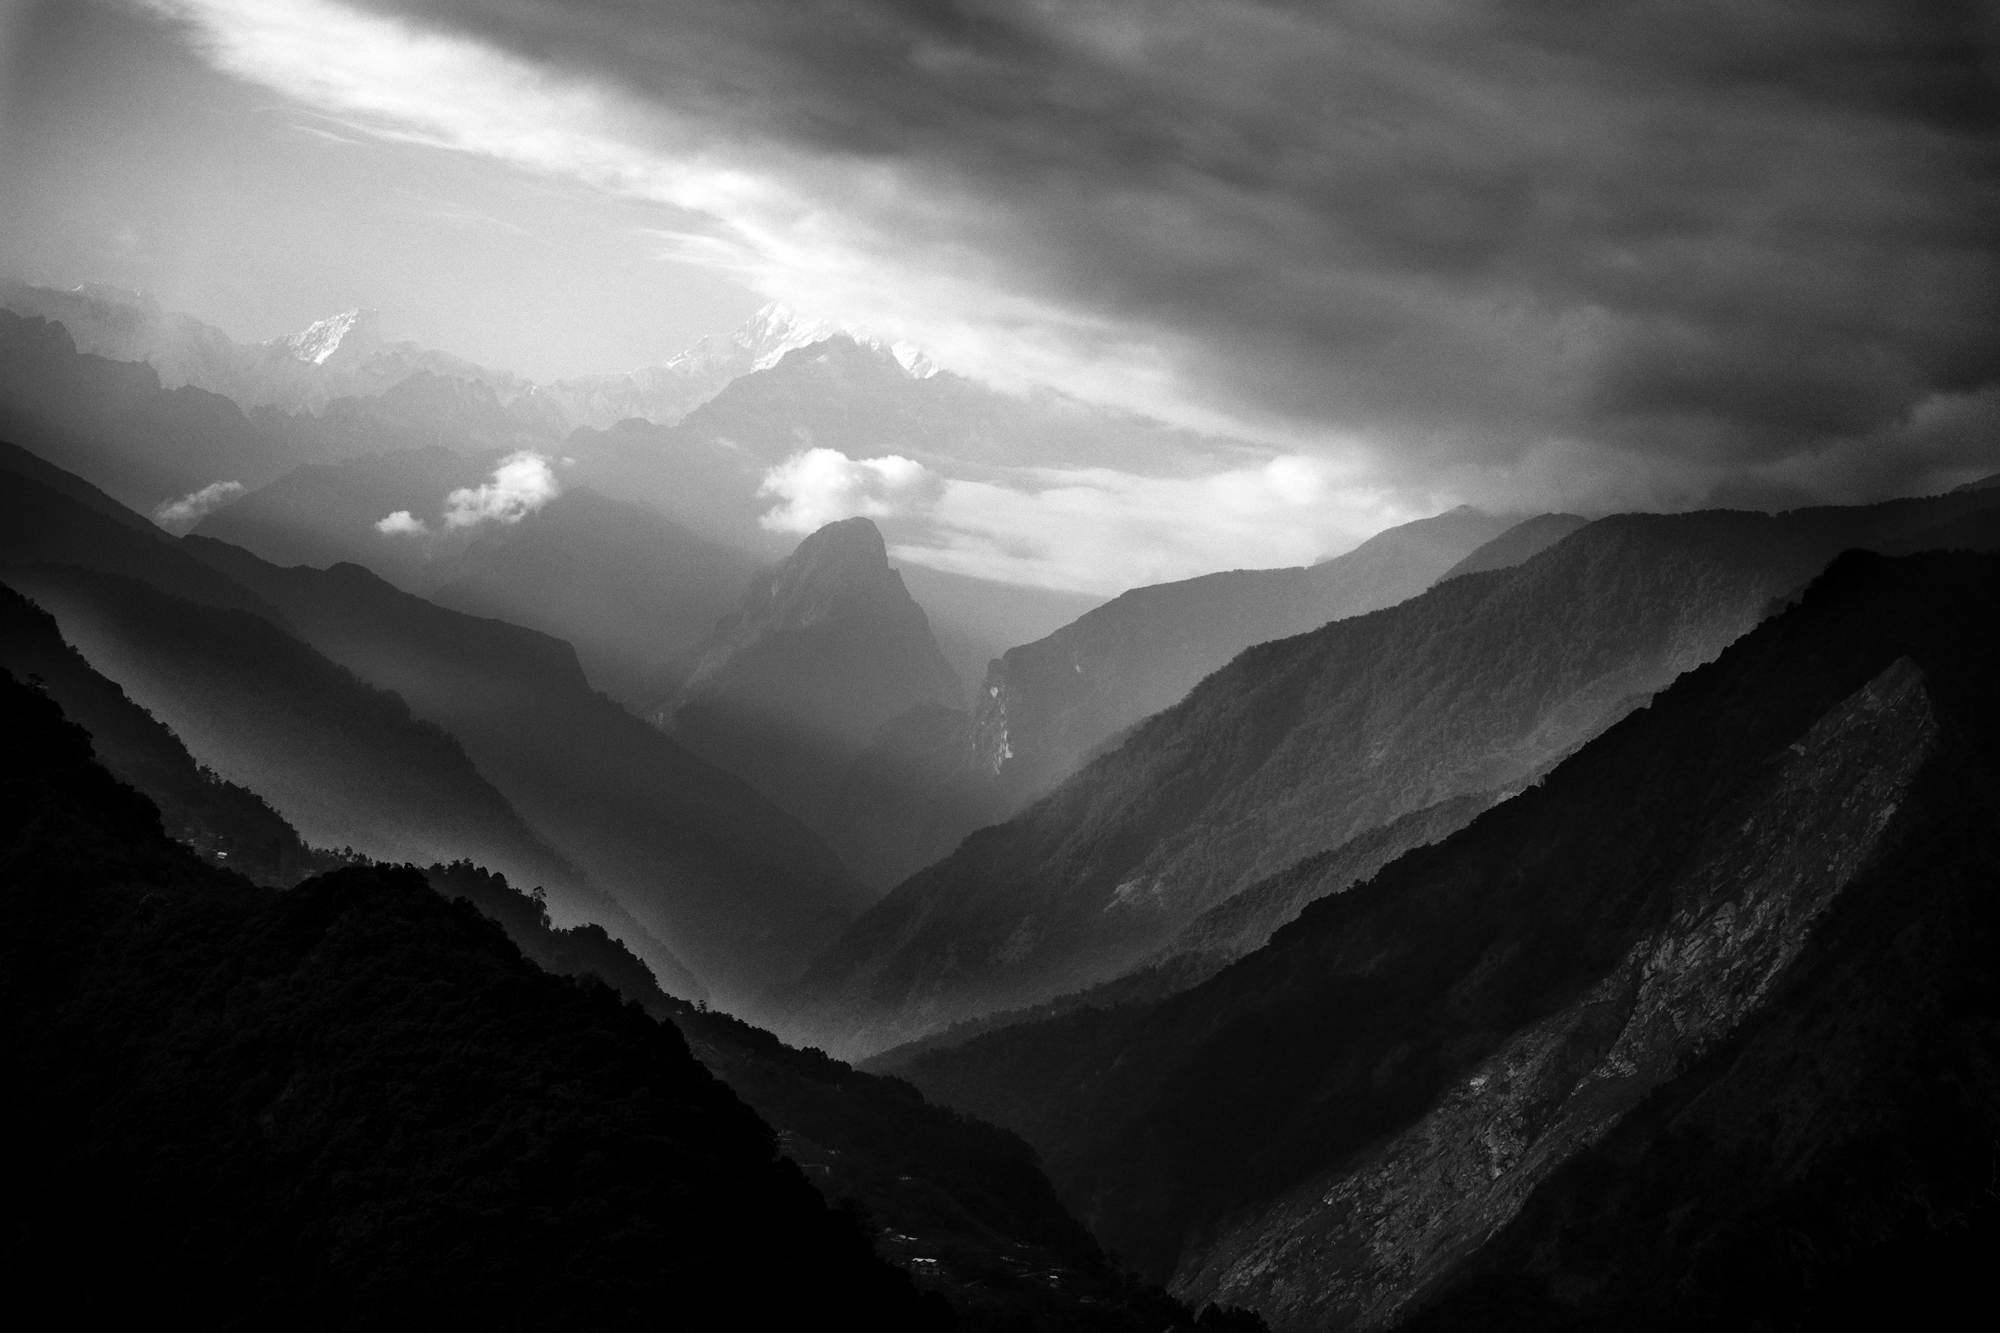 i took this shot while having lunch , suddenly seeing this movement everthing changes into magic light is great , clouds , shadows n layers of mountains .. things start happening n that's moment m waiting for  my photography is all depend on nature you only getting bored nature gives you